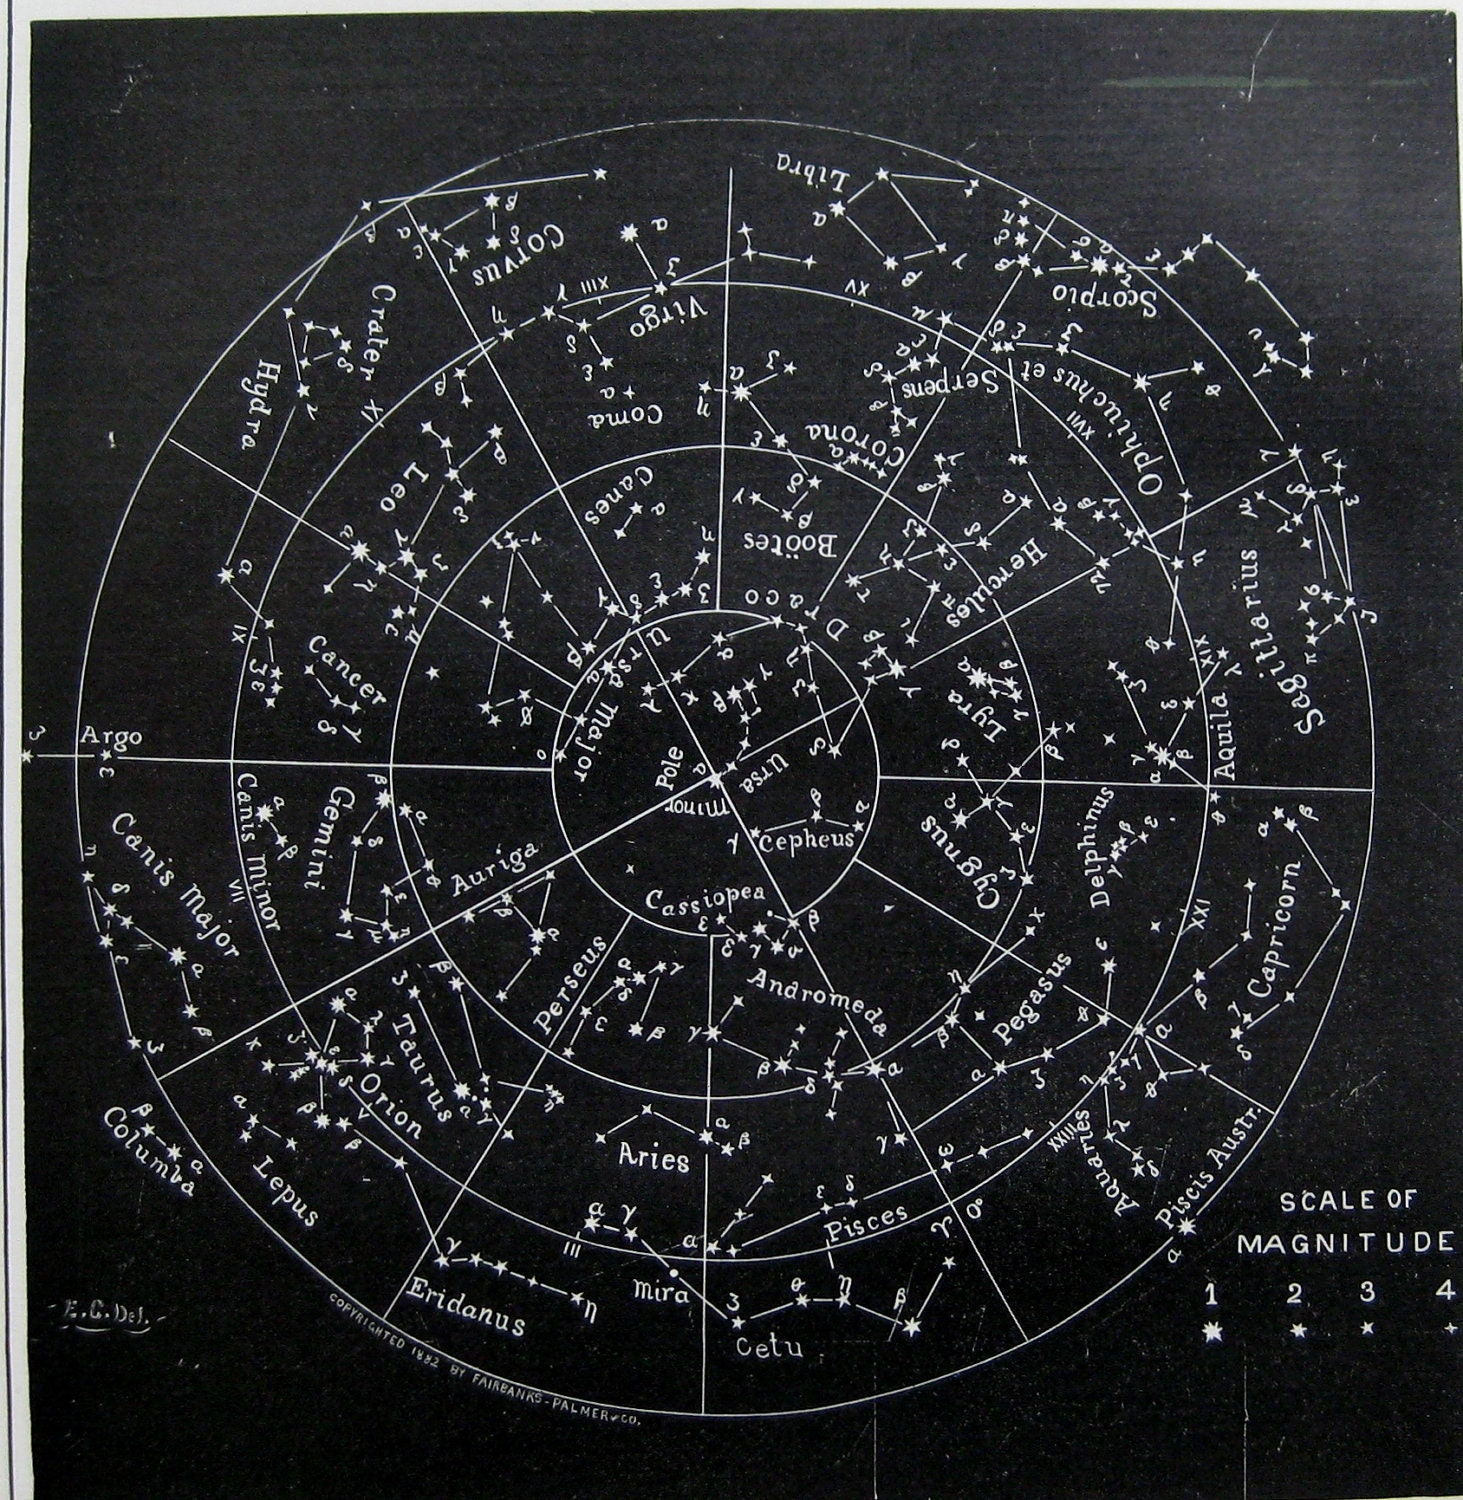 astronomy star charts - photo #23